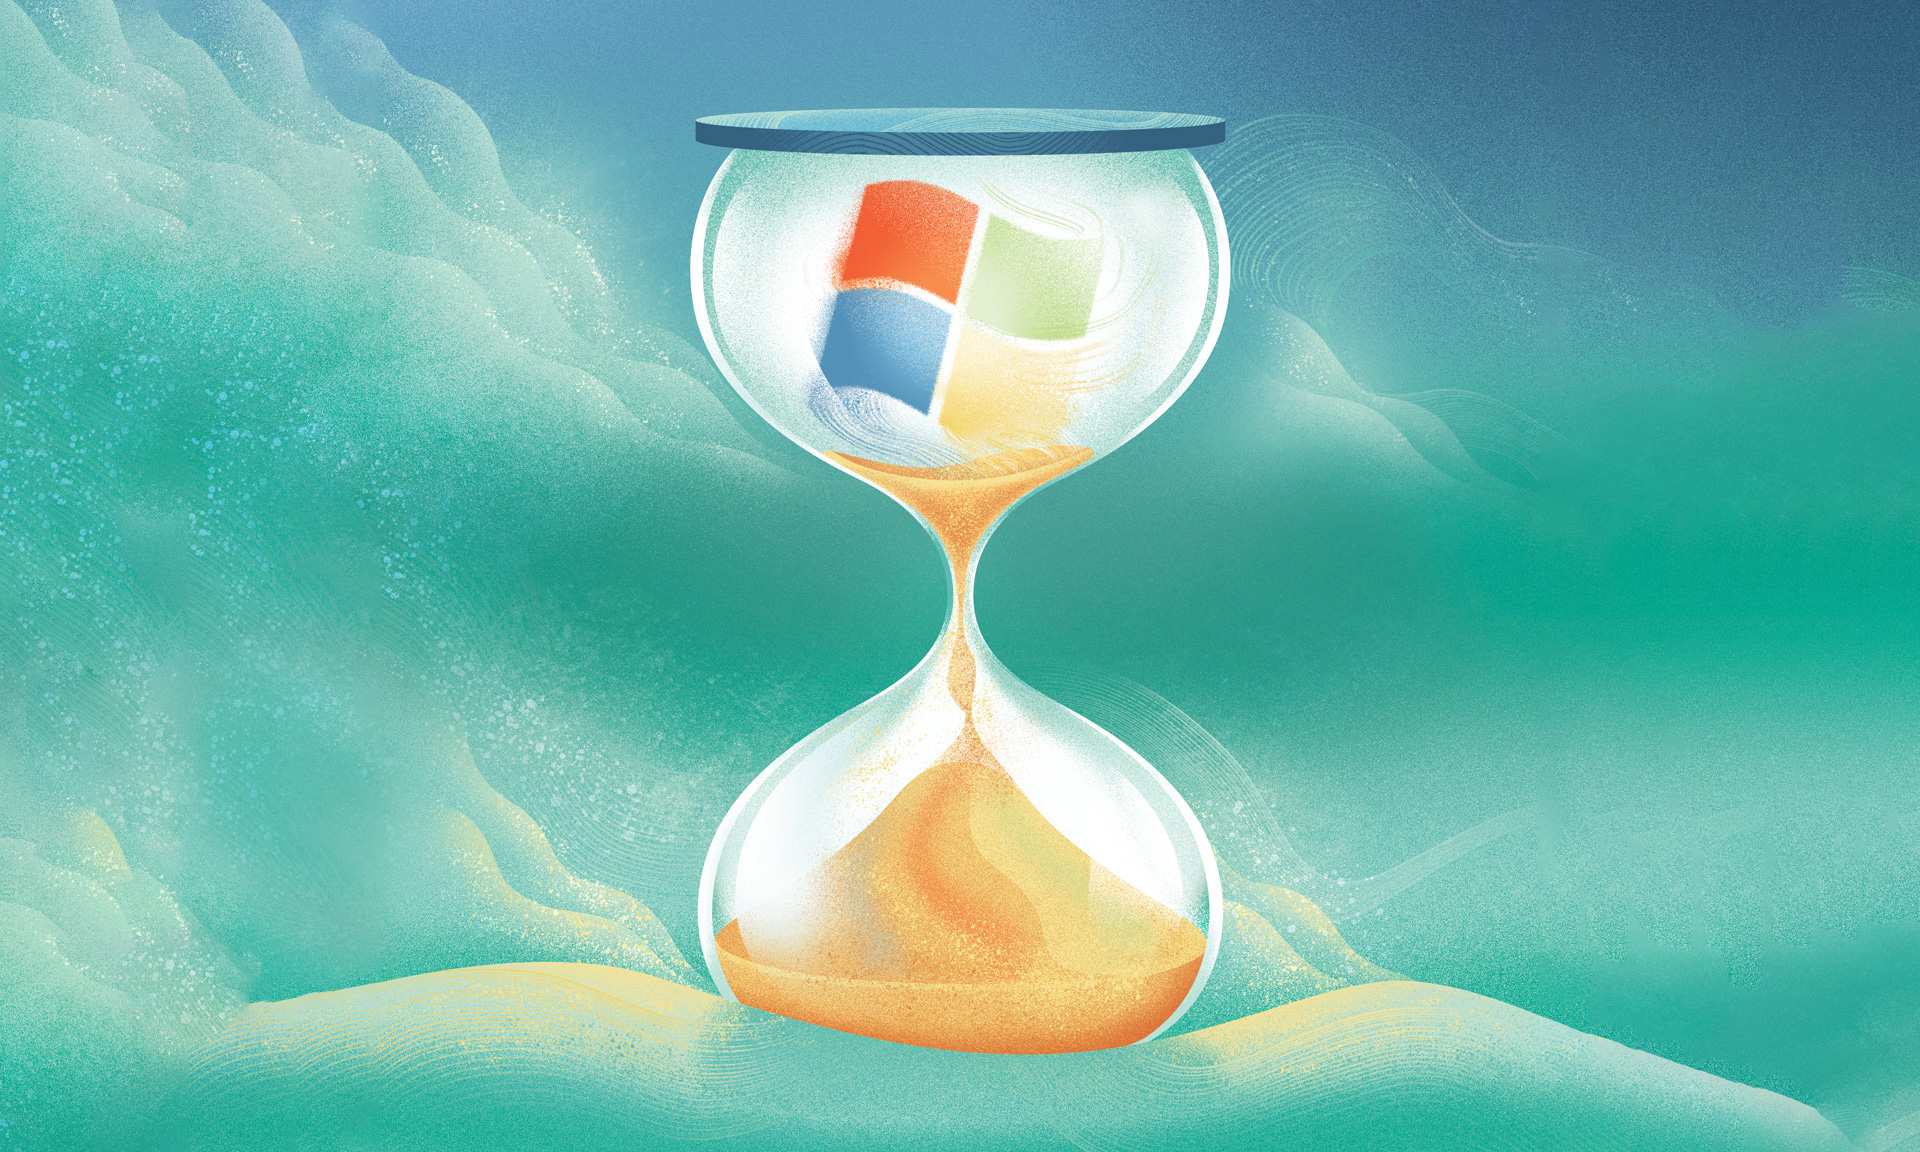 Five things to do with a Windows 7 laptop after the Microsoft support deadline – Which? News